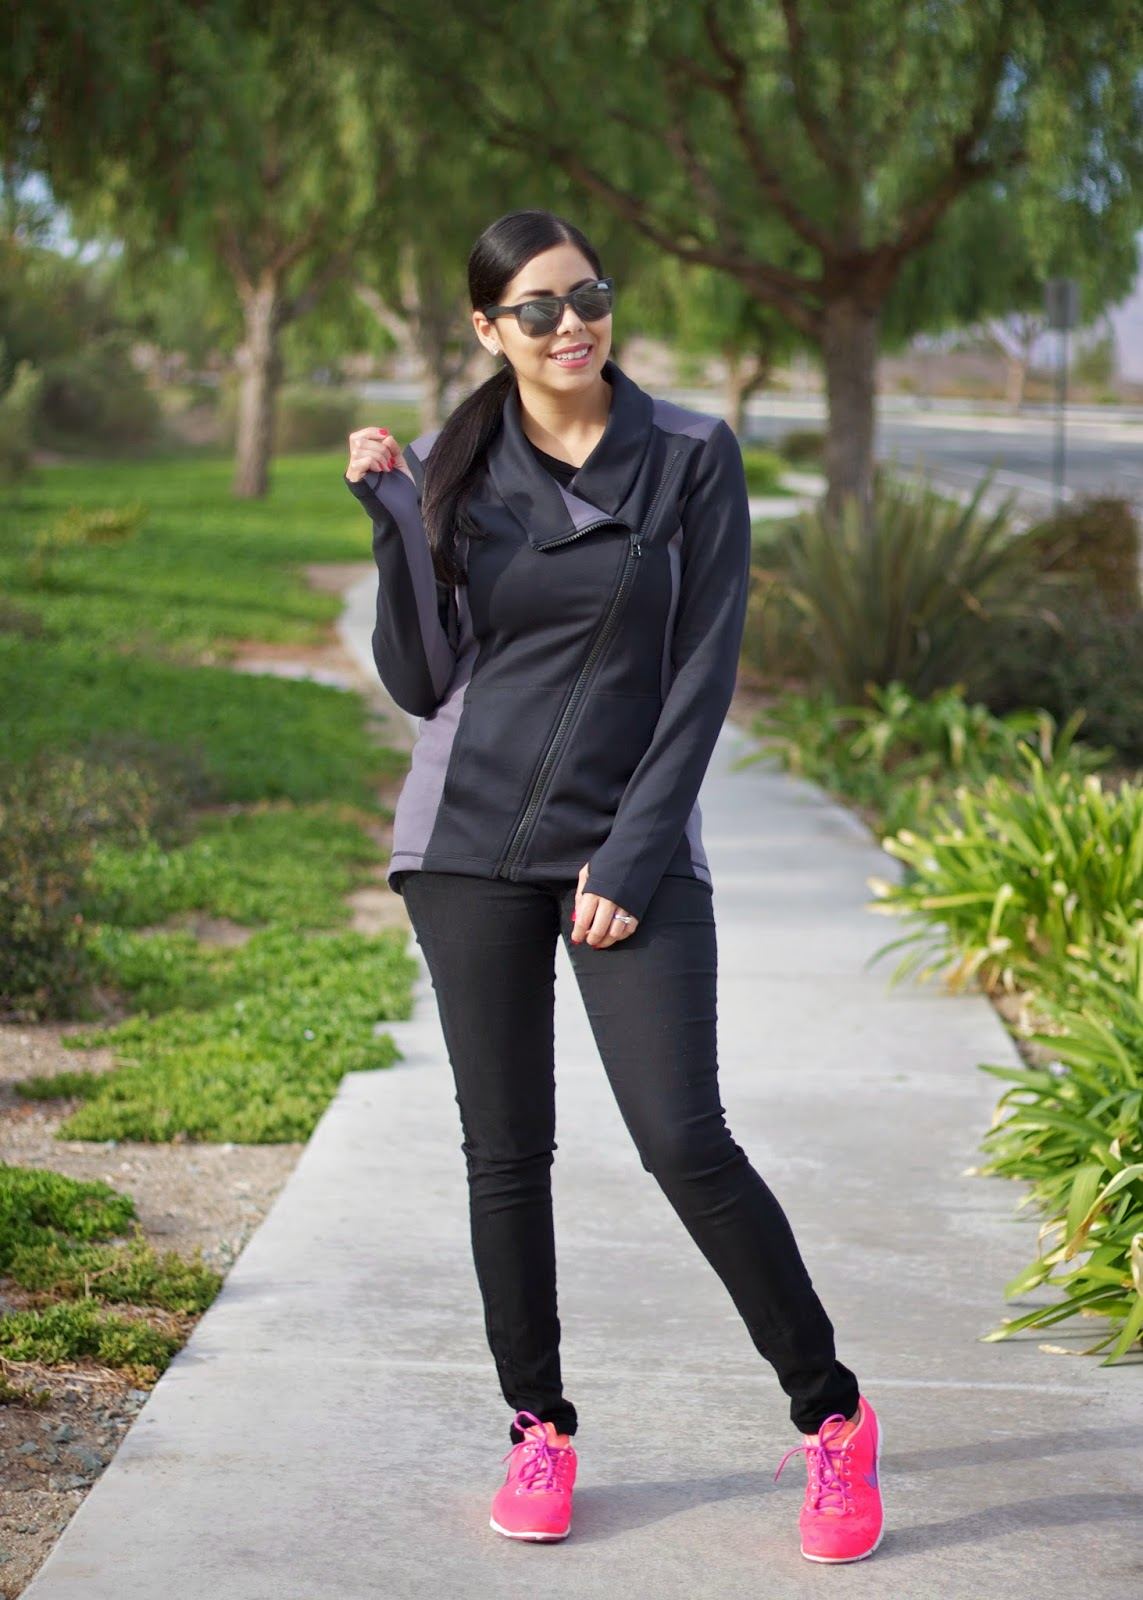 cabi clothing dash jacket, cabi clothing blogger, how to wear a gym jacket, rayban sunnies, rayban sunglasses, rayban blogger, how to wear a black coat